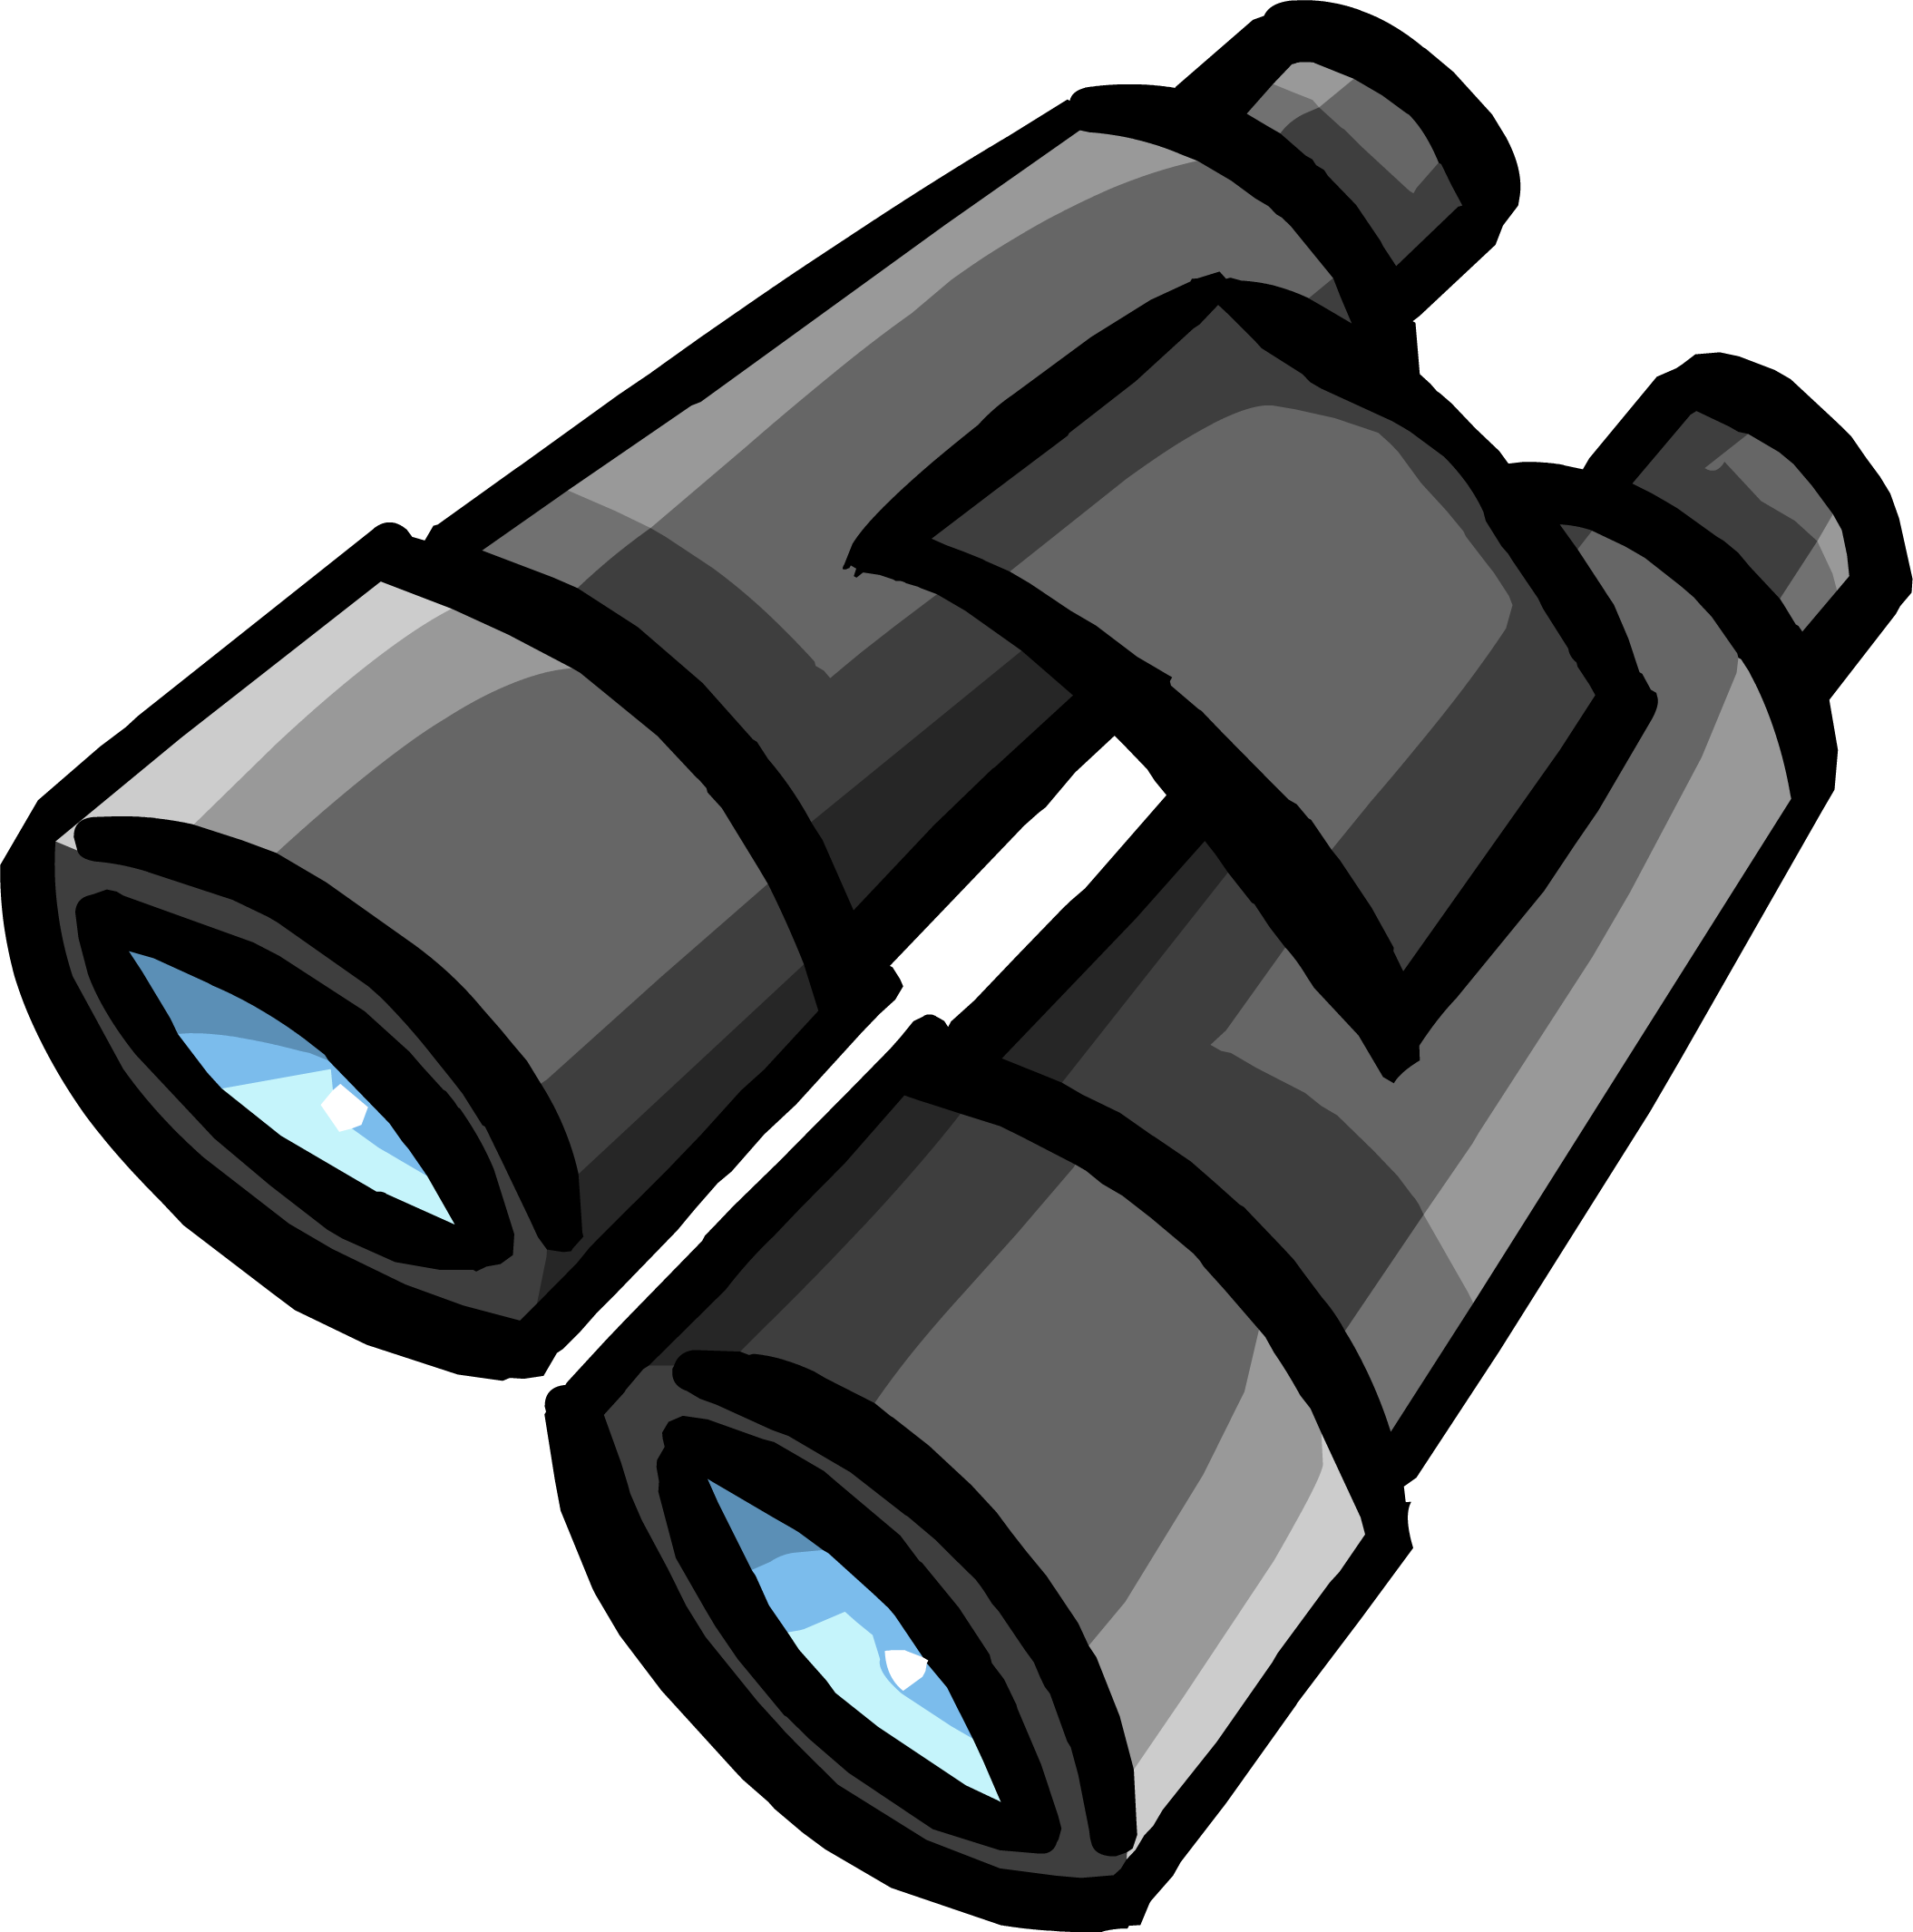 jpg transparent stock Binoculars clipart. Free cliparts download clip.